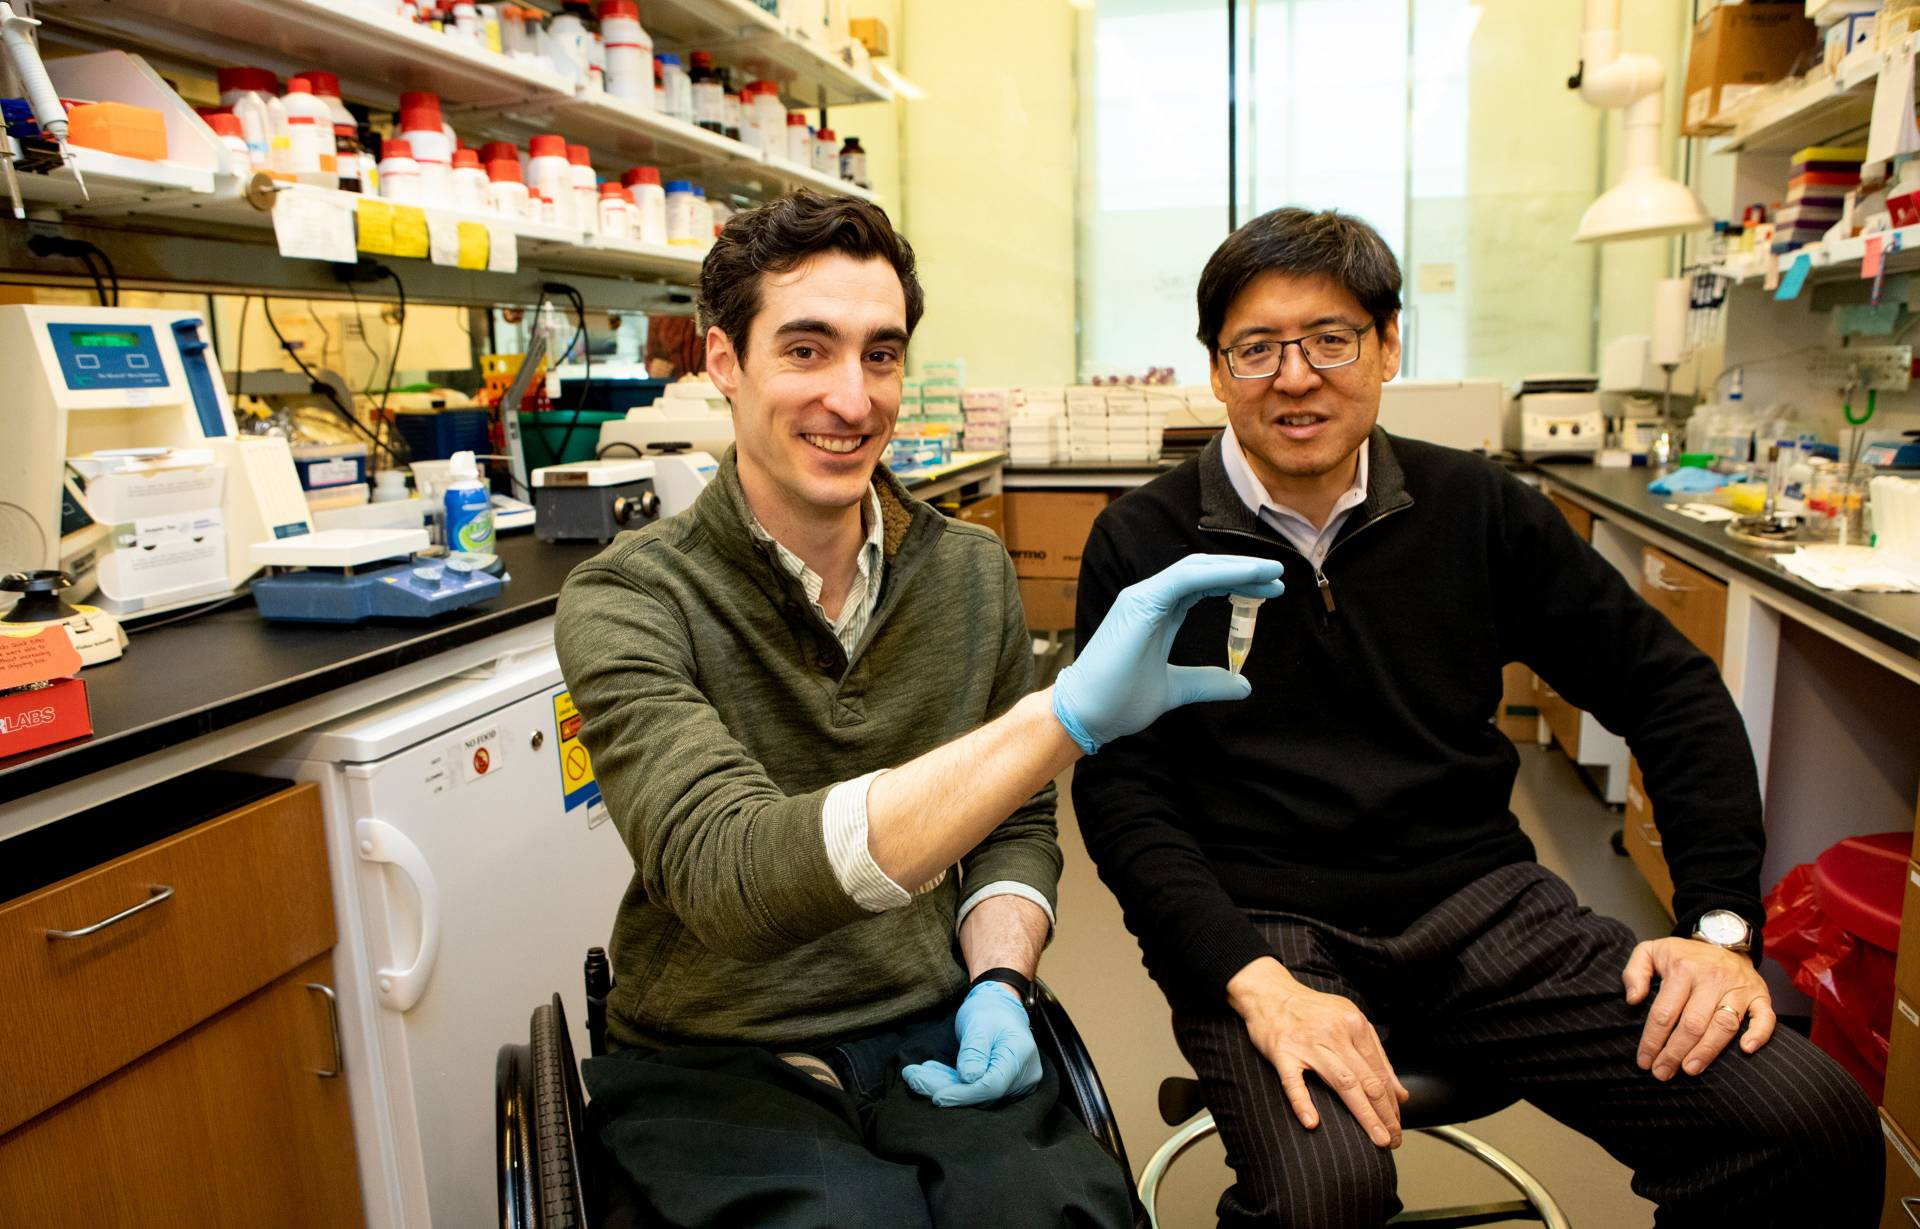 Tom Pisano and Sam Wang in lab